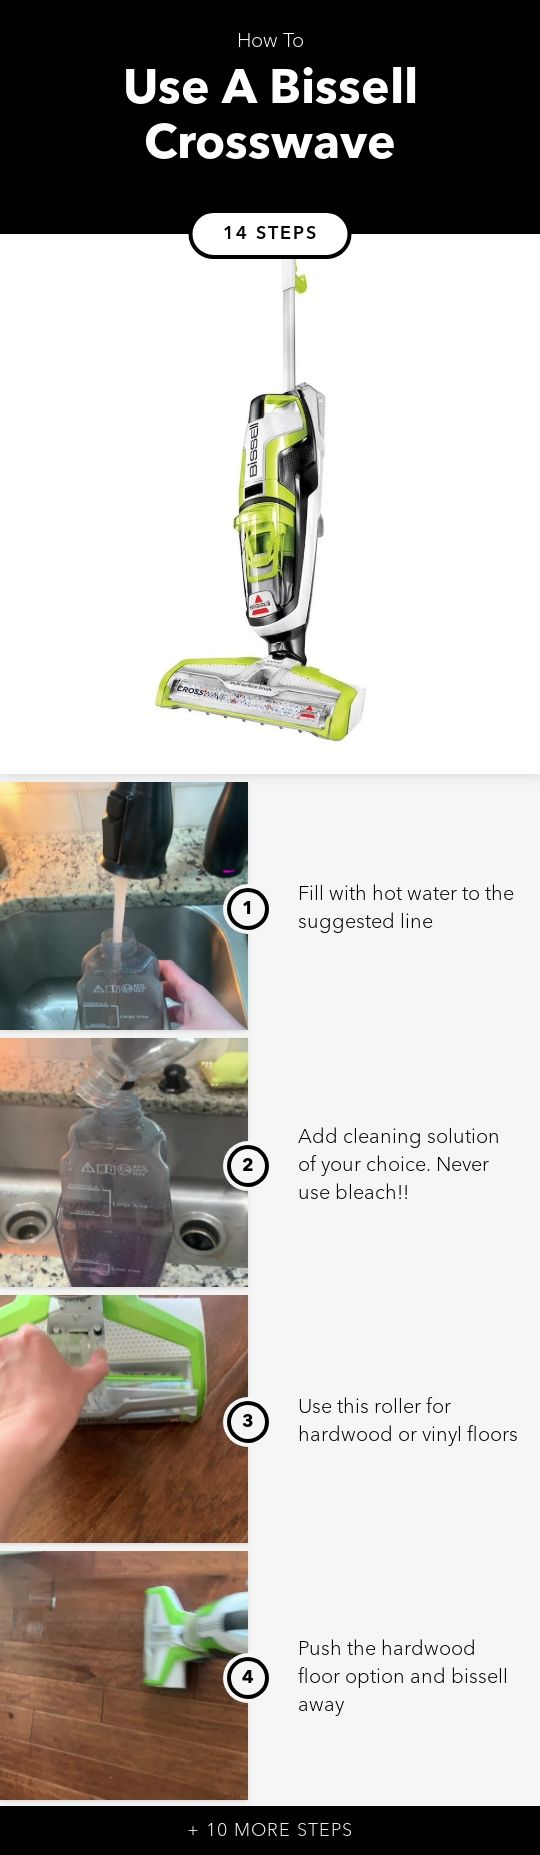 Video Instructions For Using The Bissell Crosswave And Cleaning After Use You Can Find A Link For Thi Best Cleaning Products Vinyl Flooring Cleaning Solutions